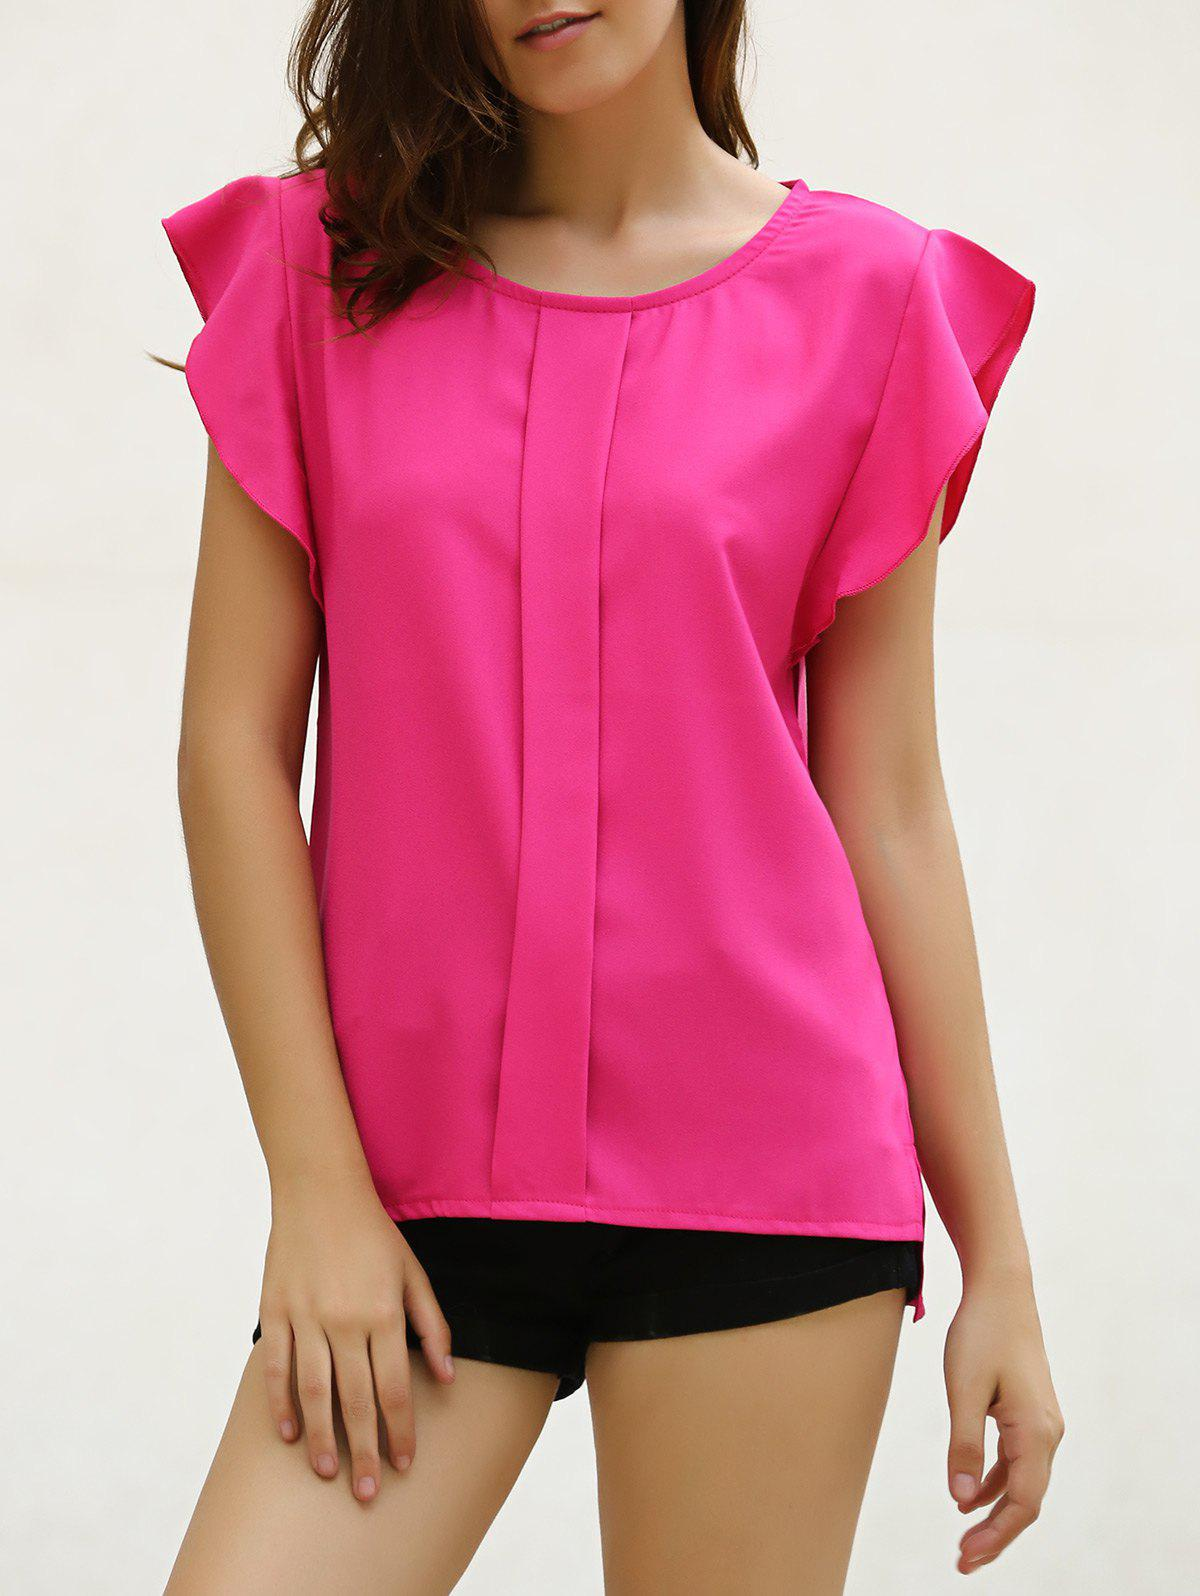 Candy Color Loose Leisure Women's Chiffon Short Tulip Sleeve Blouse Tops - RED L